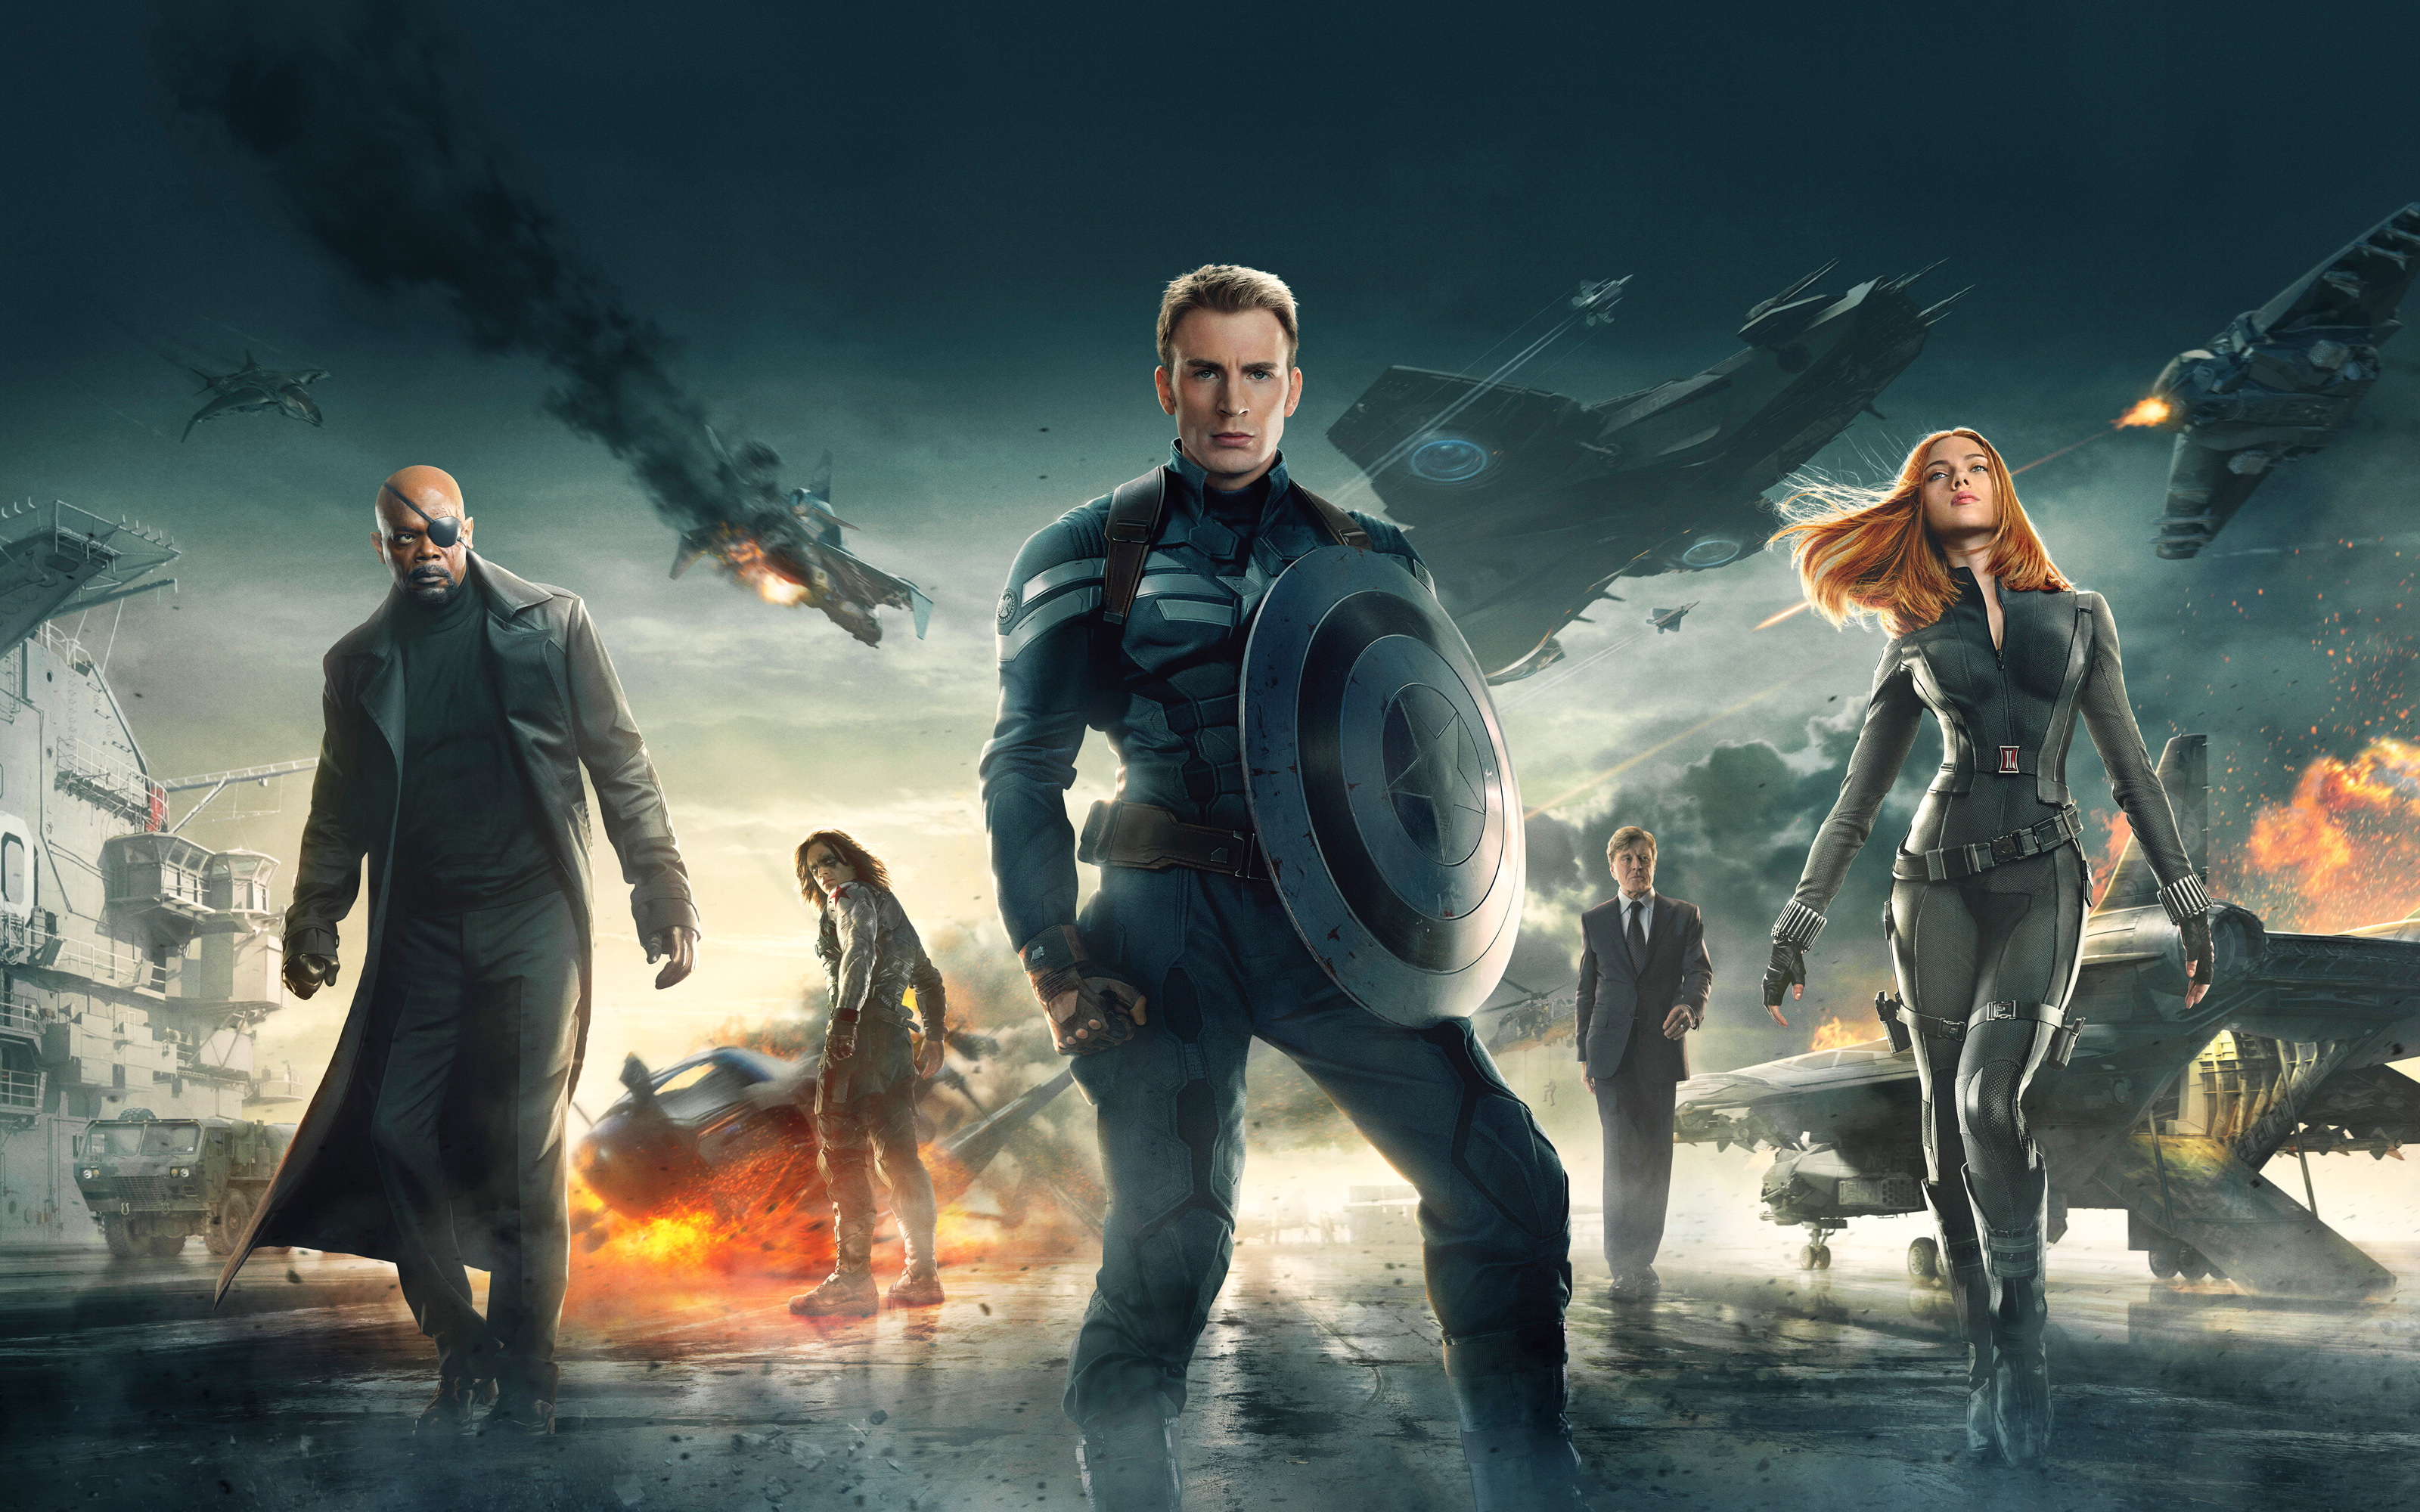 Captain America The Winter Soldier Hd Wallpaper Background Image